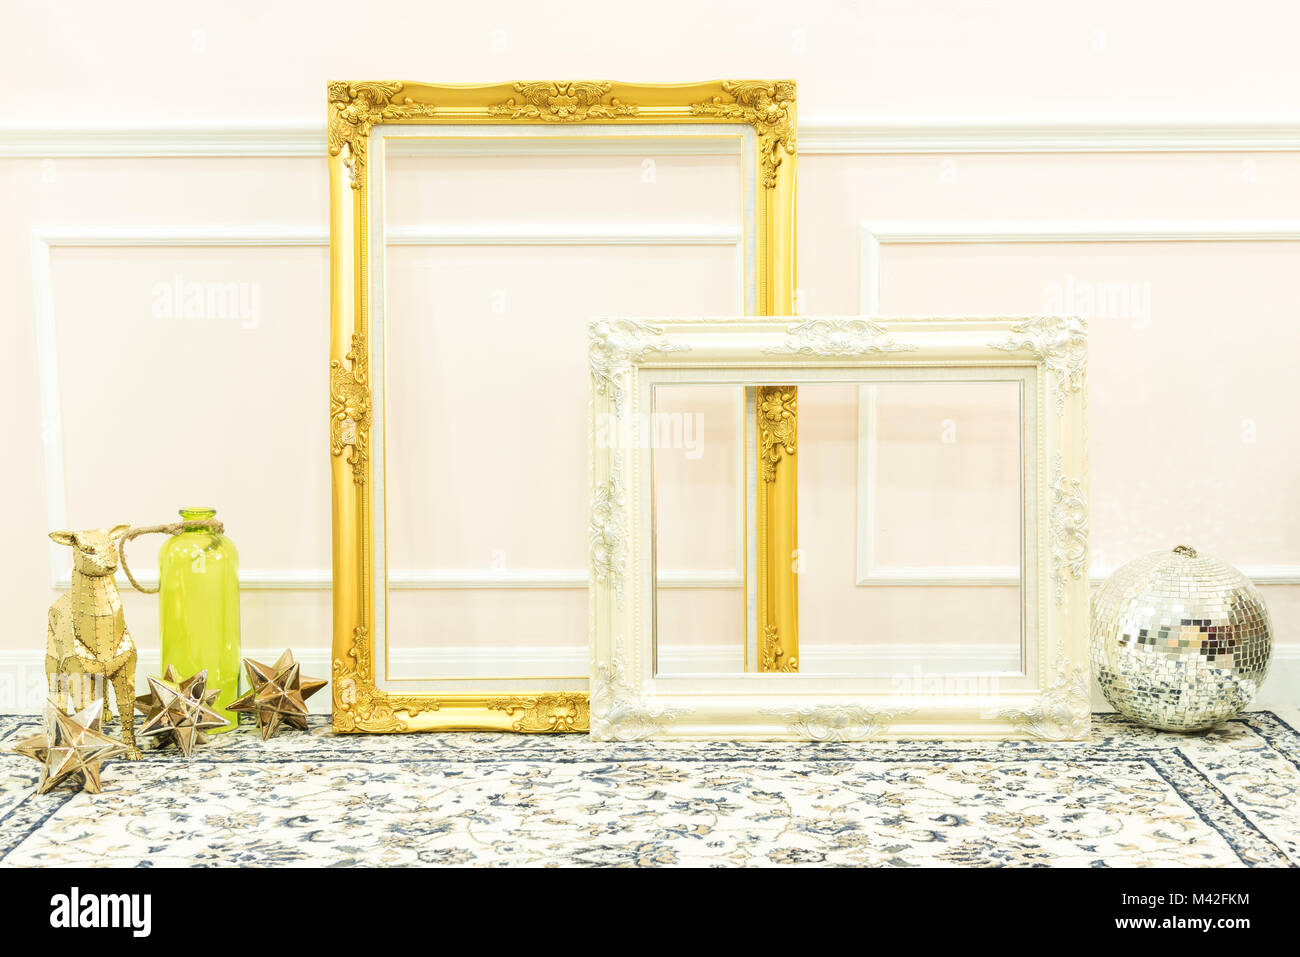 Wall Frames Antique Stock Photos & Wall Frames Antique Stock Images ...